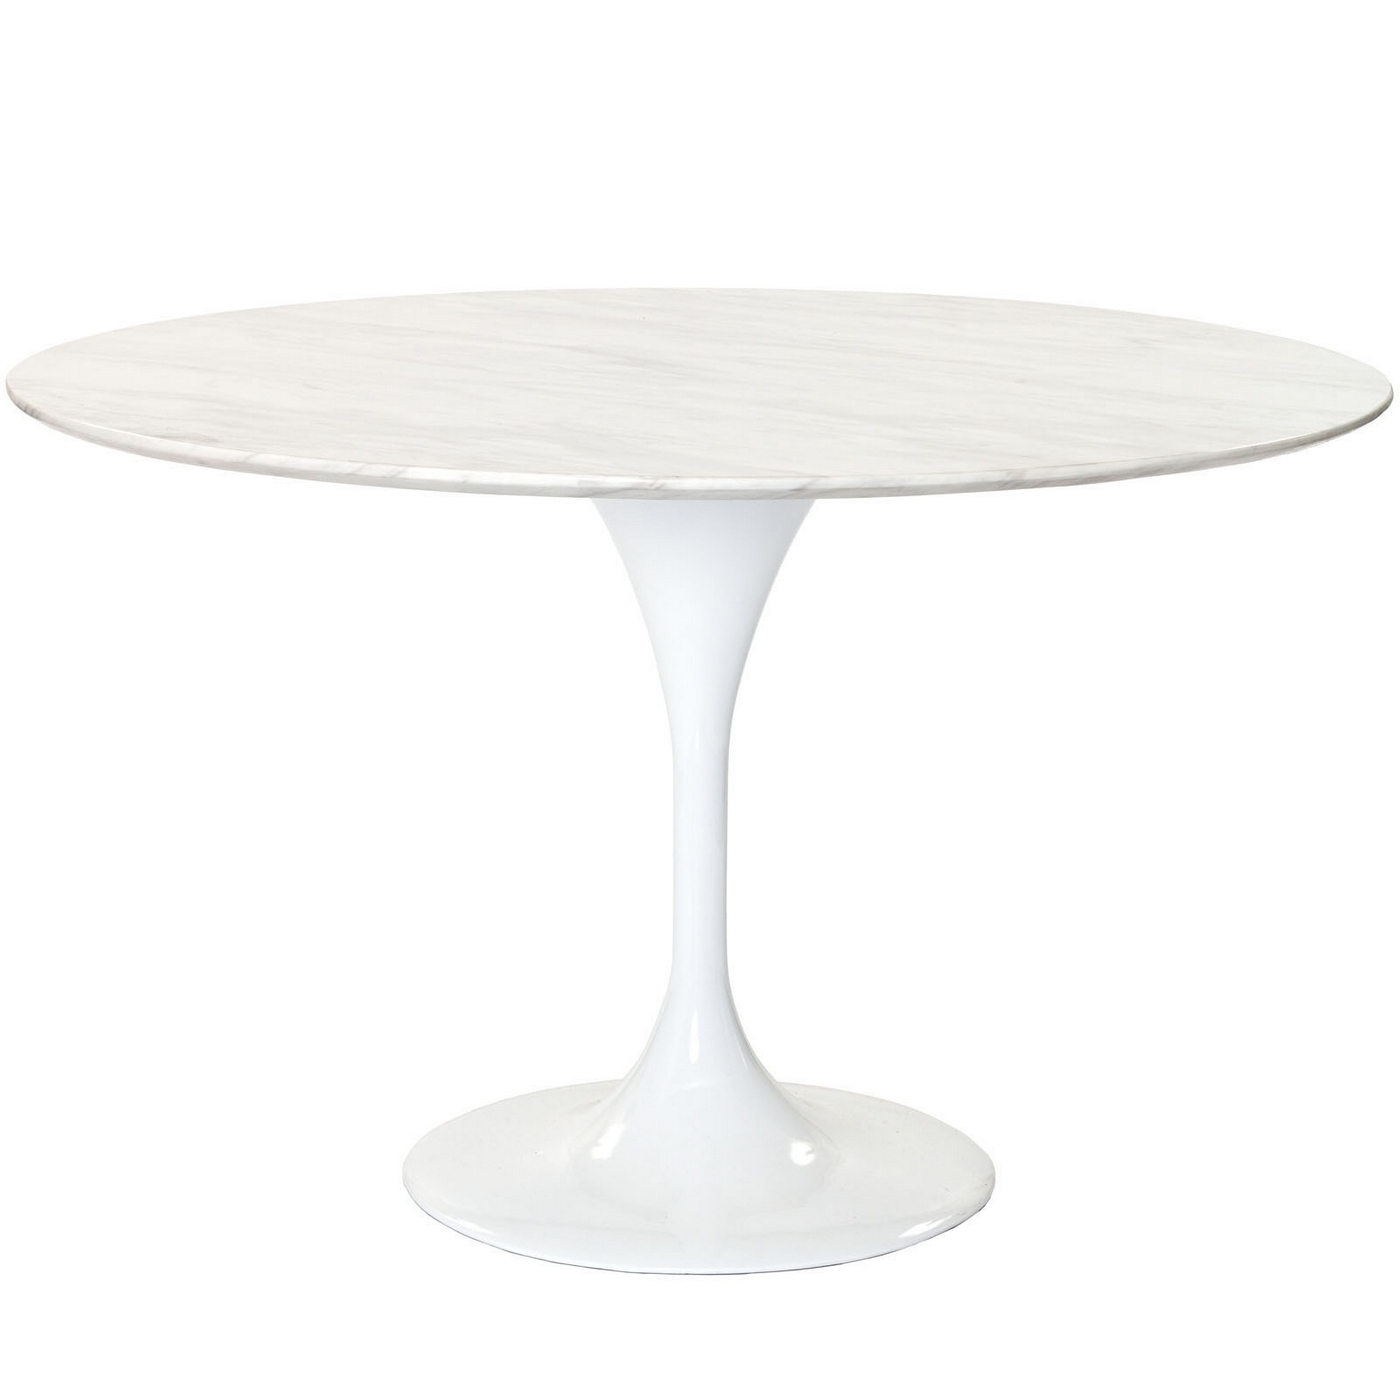 Lippa 48quot Round Marble Top Dining Table With Lacquered  : lippa 48 round marble top dining table with lacquered pedestal white 11 from www.ebay.com size 1400 x 1400 jpeg 133kB